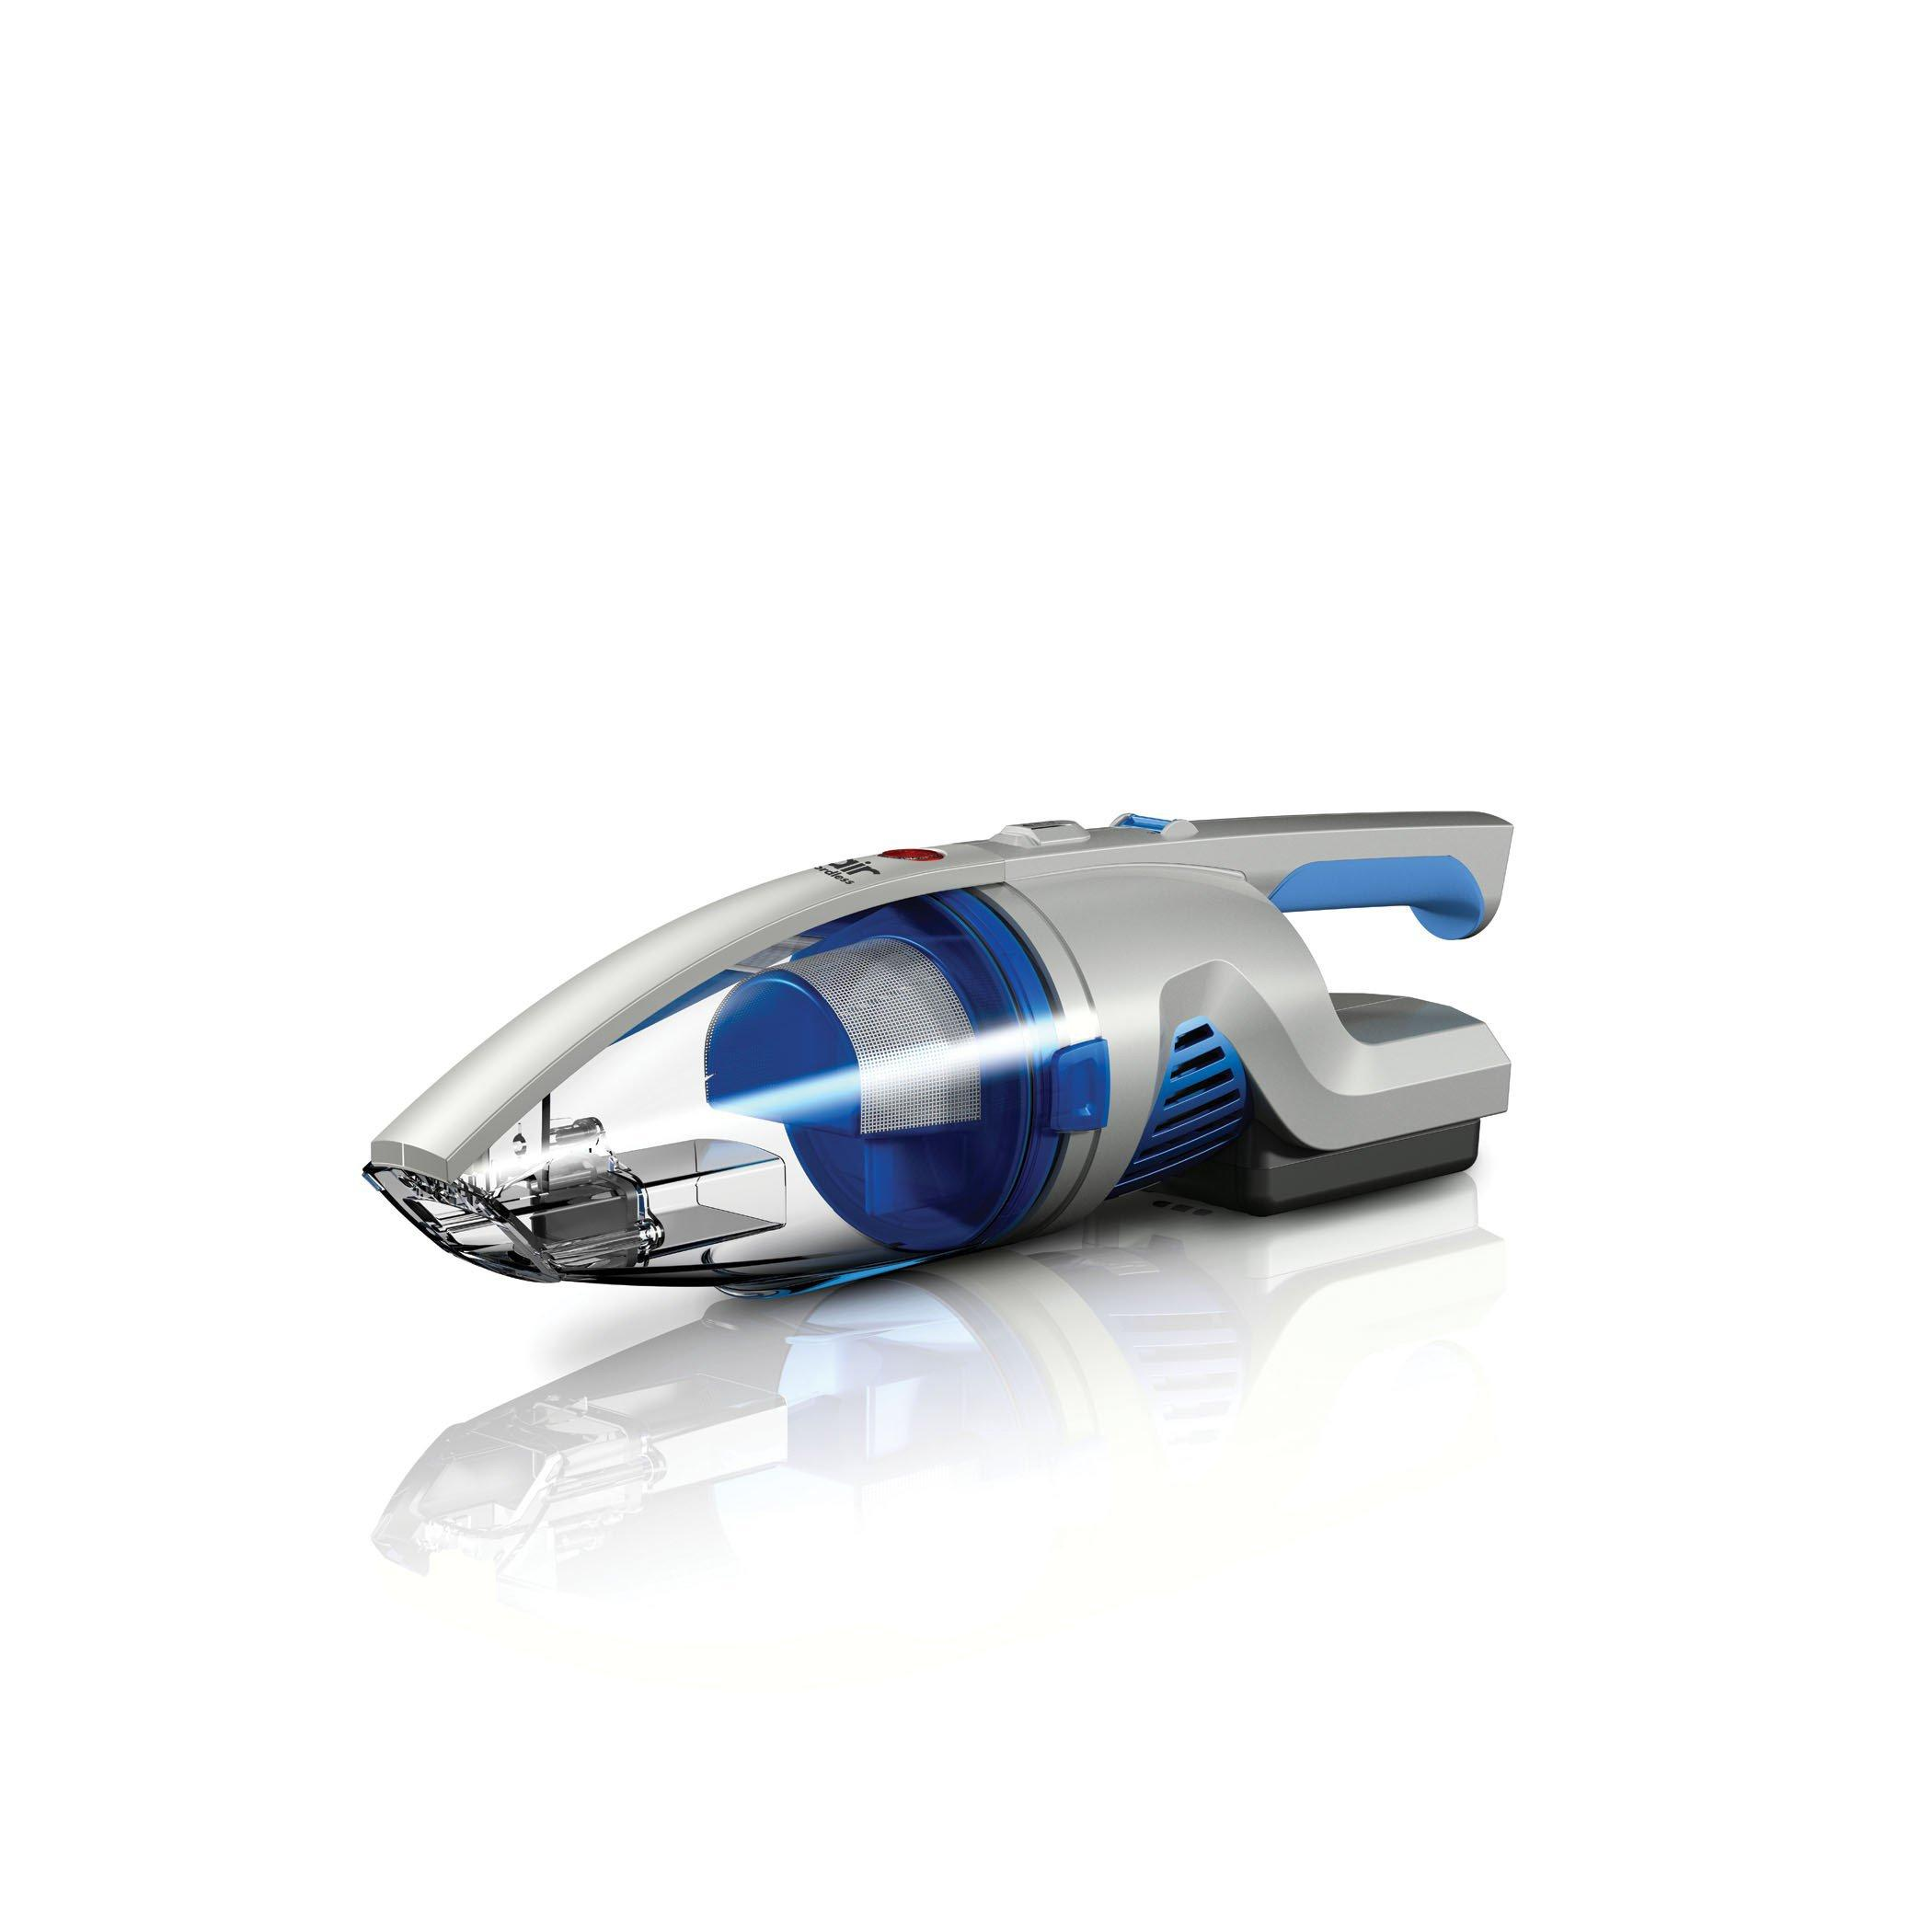 Air Cordless Handheld Vacuum (Battery Not Included)